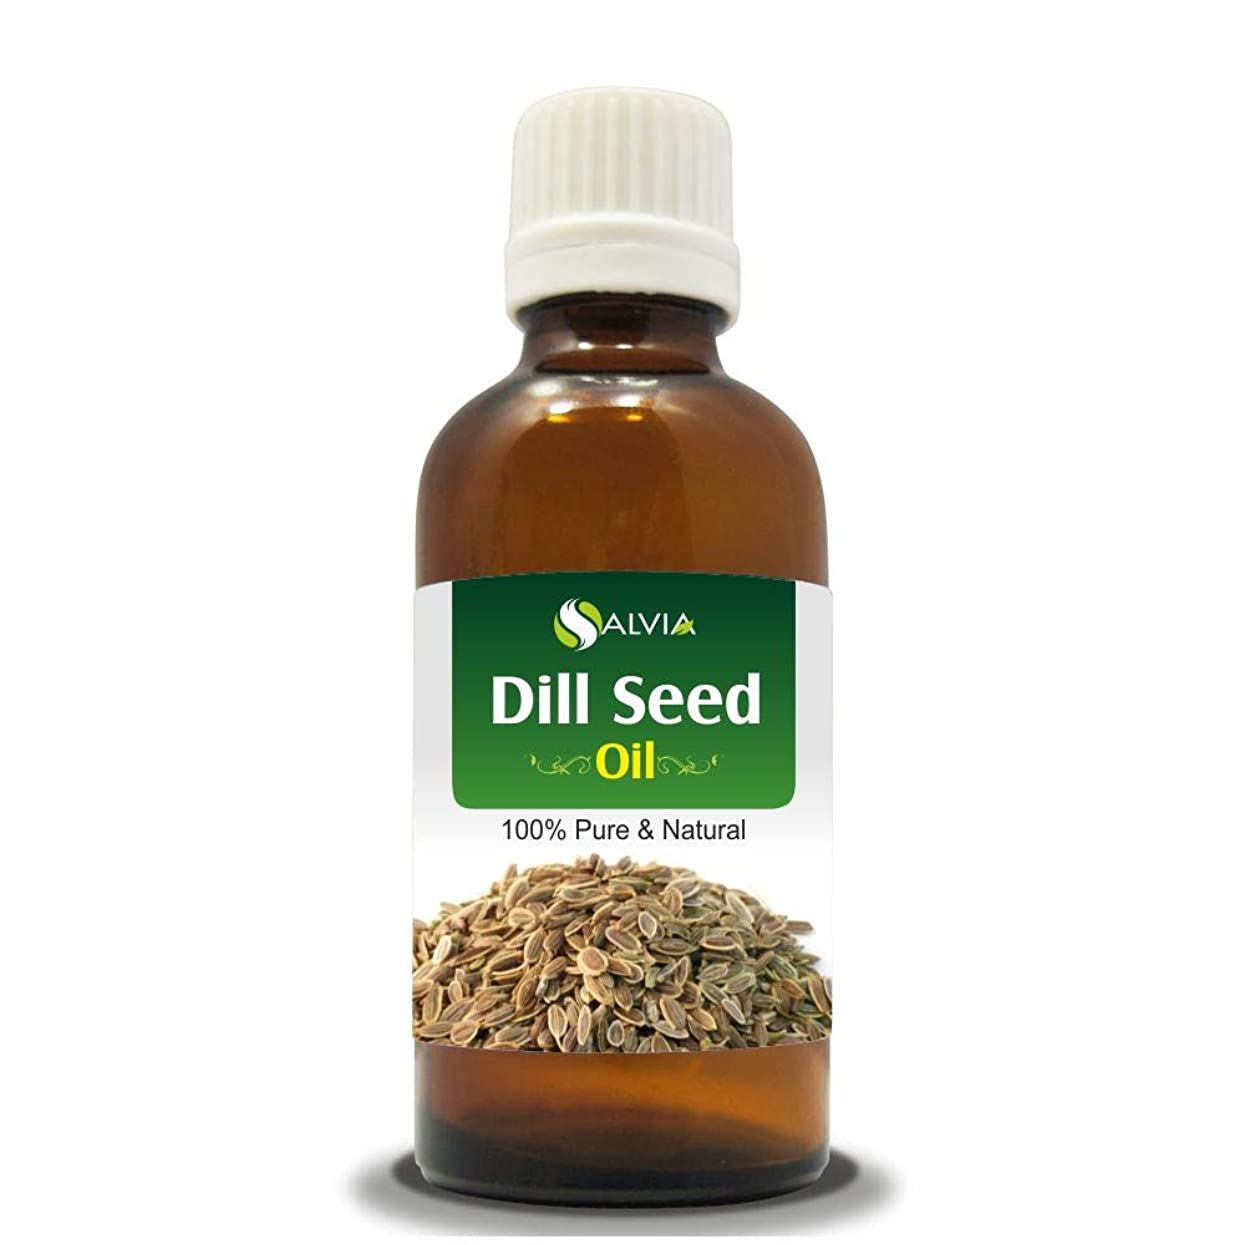 議題キルス最少DILL SEED OIL 100% NATURAL PURE UNDILUTED UNCUT ESSENTIAL OIL 15ML